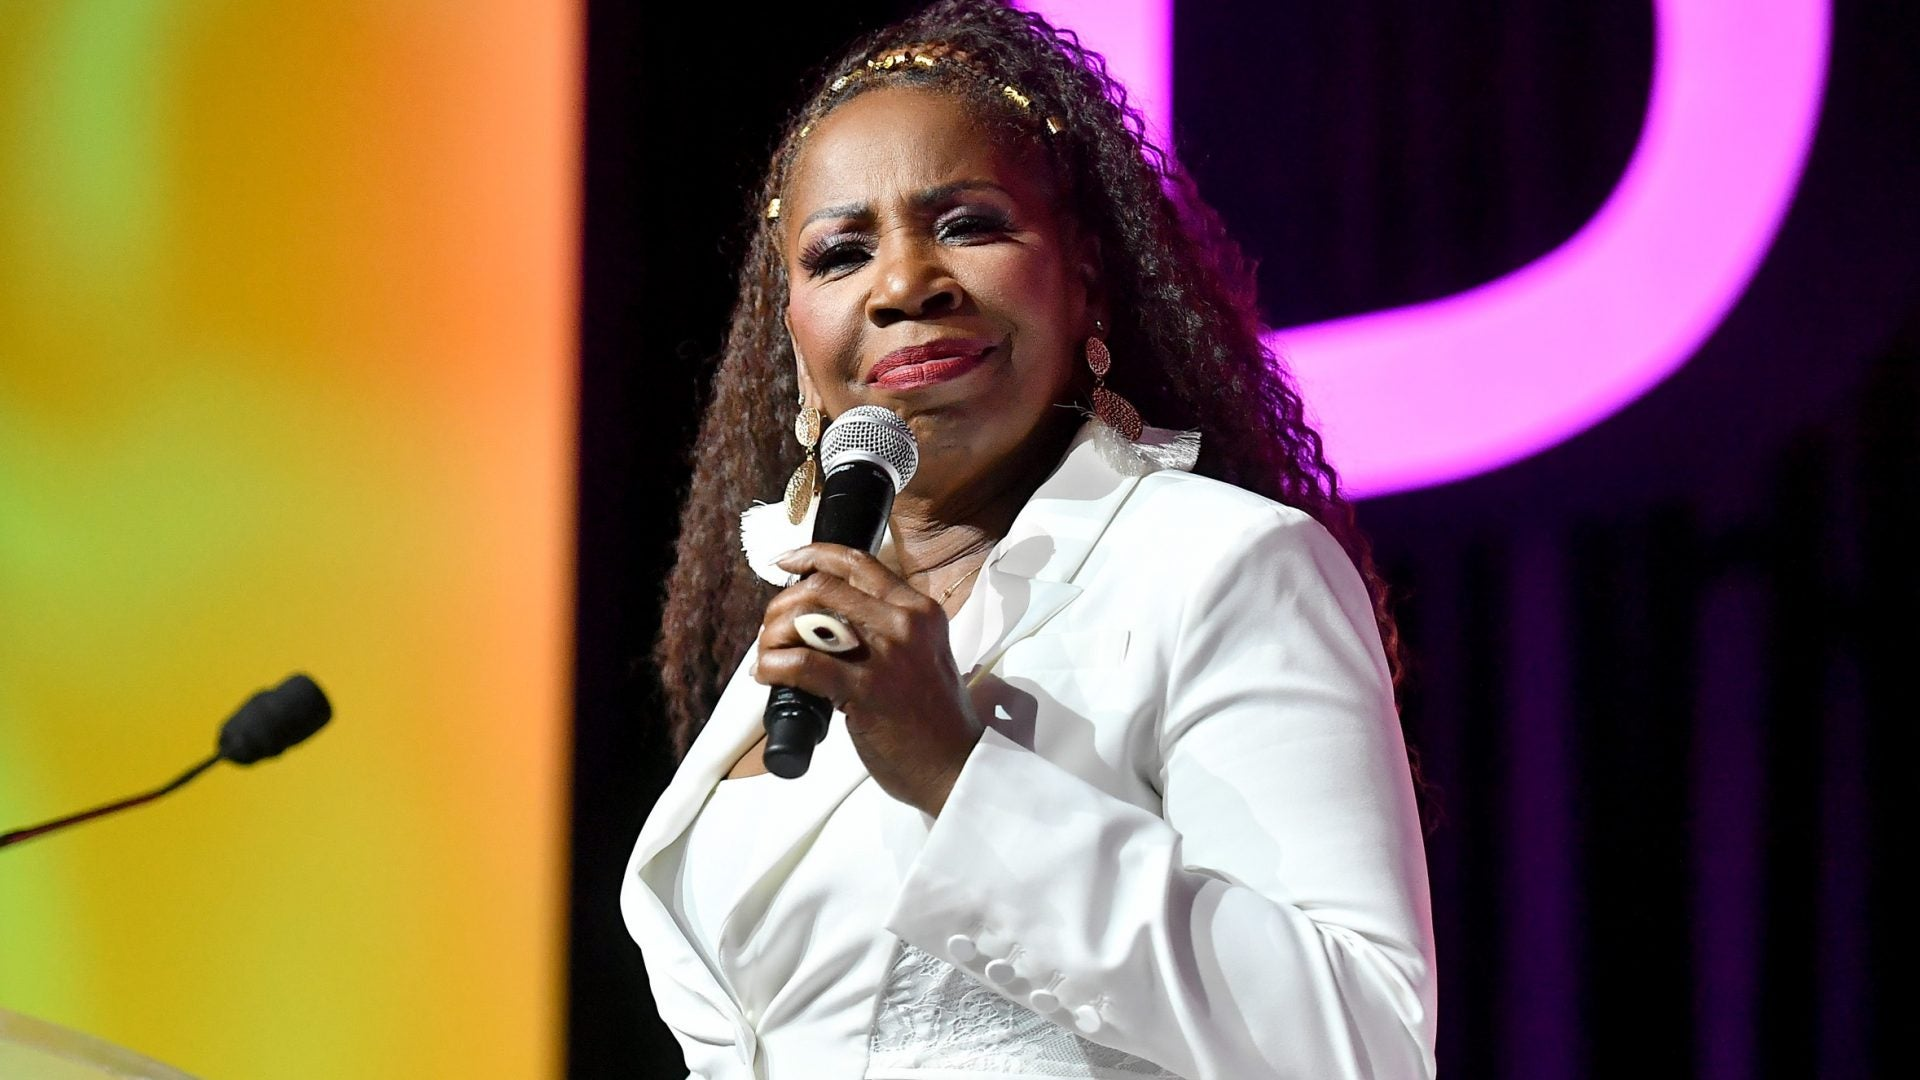 Iyanla Vanzant: 'When Was The Last Time You Prayed Over Your Family?'